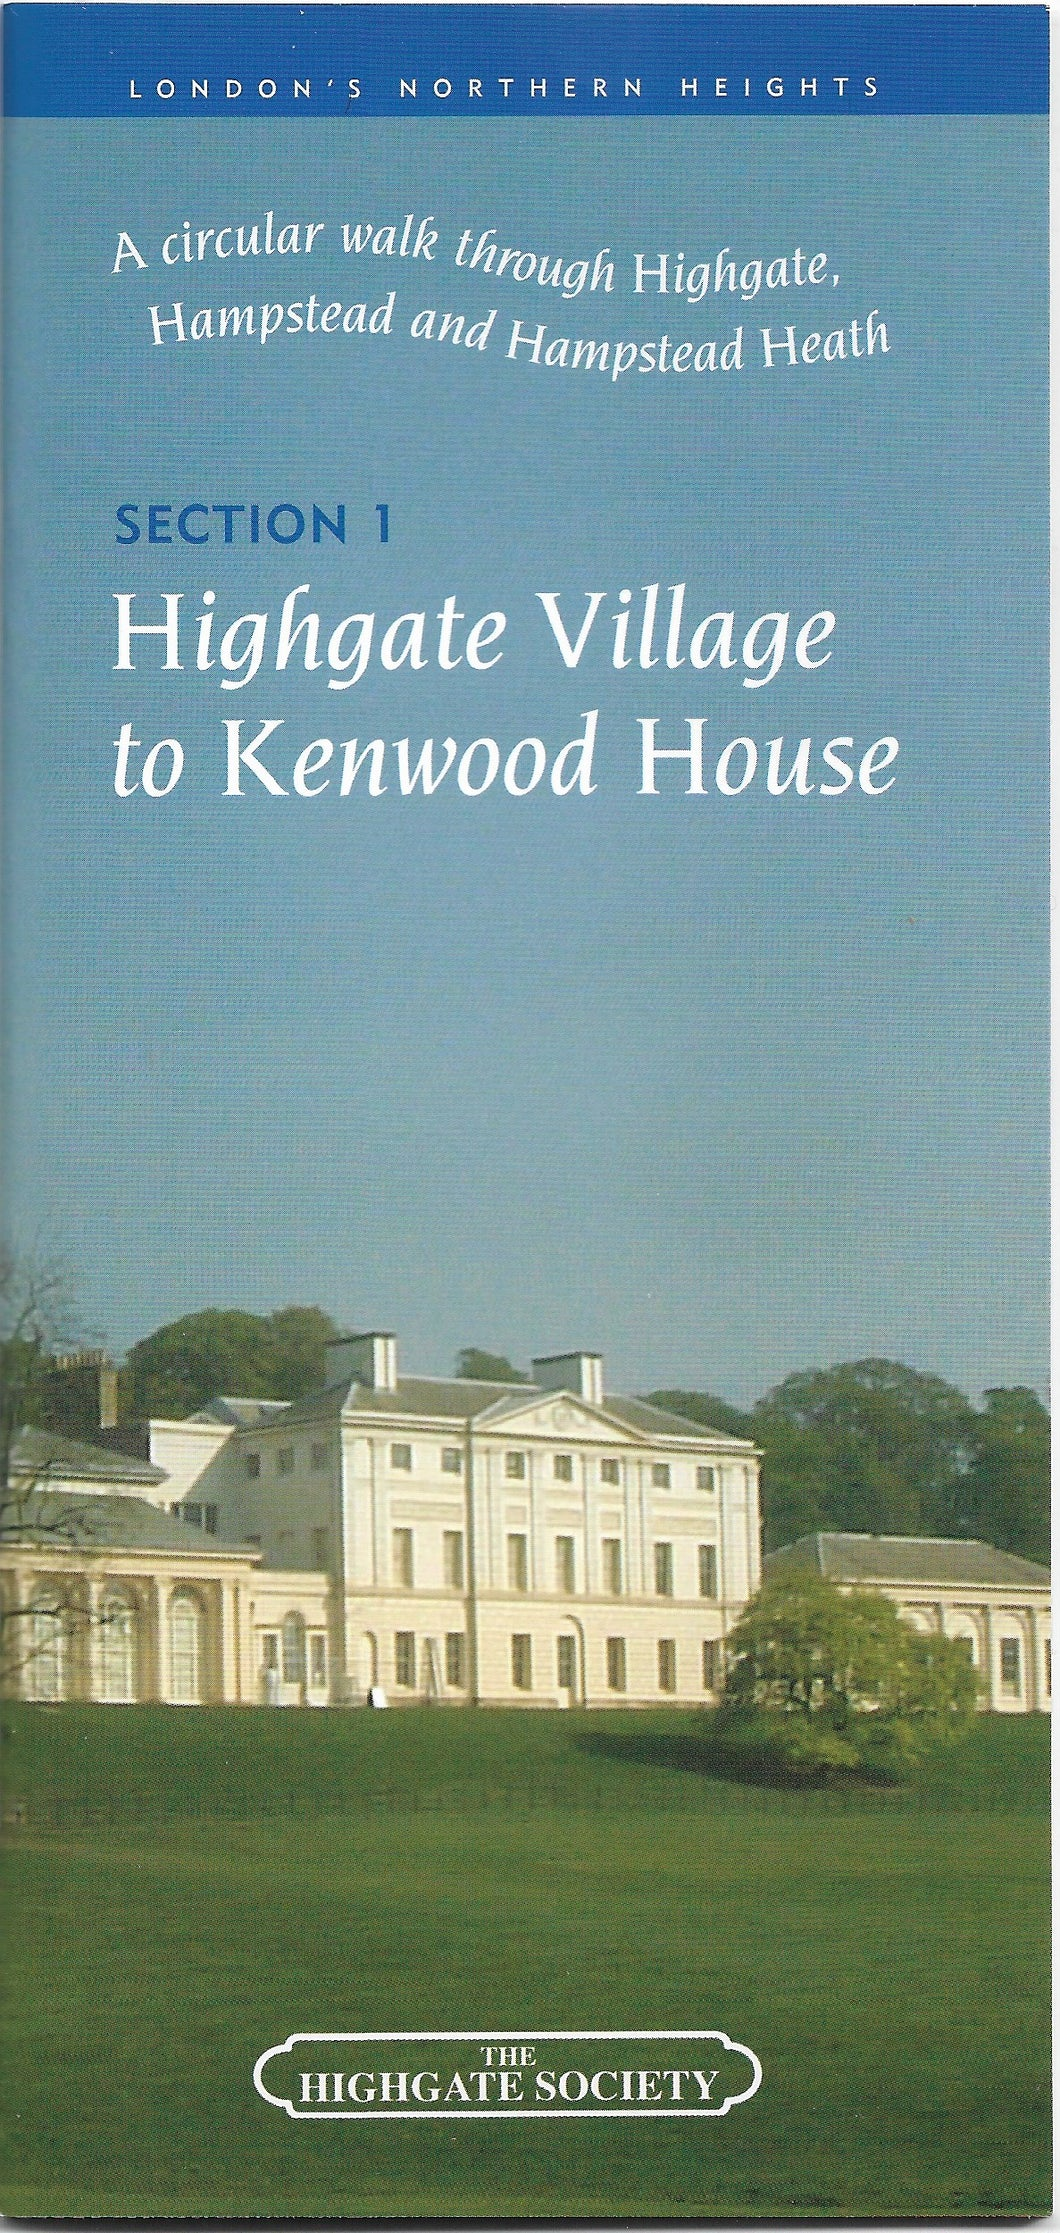 Guide - (1) Highgate Village to Kenwood House